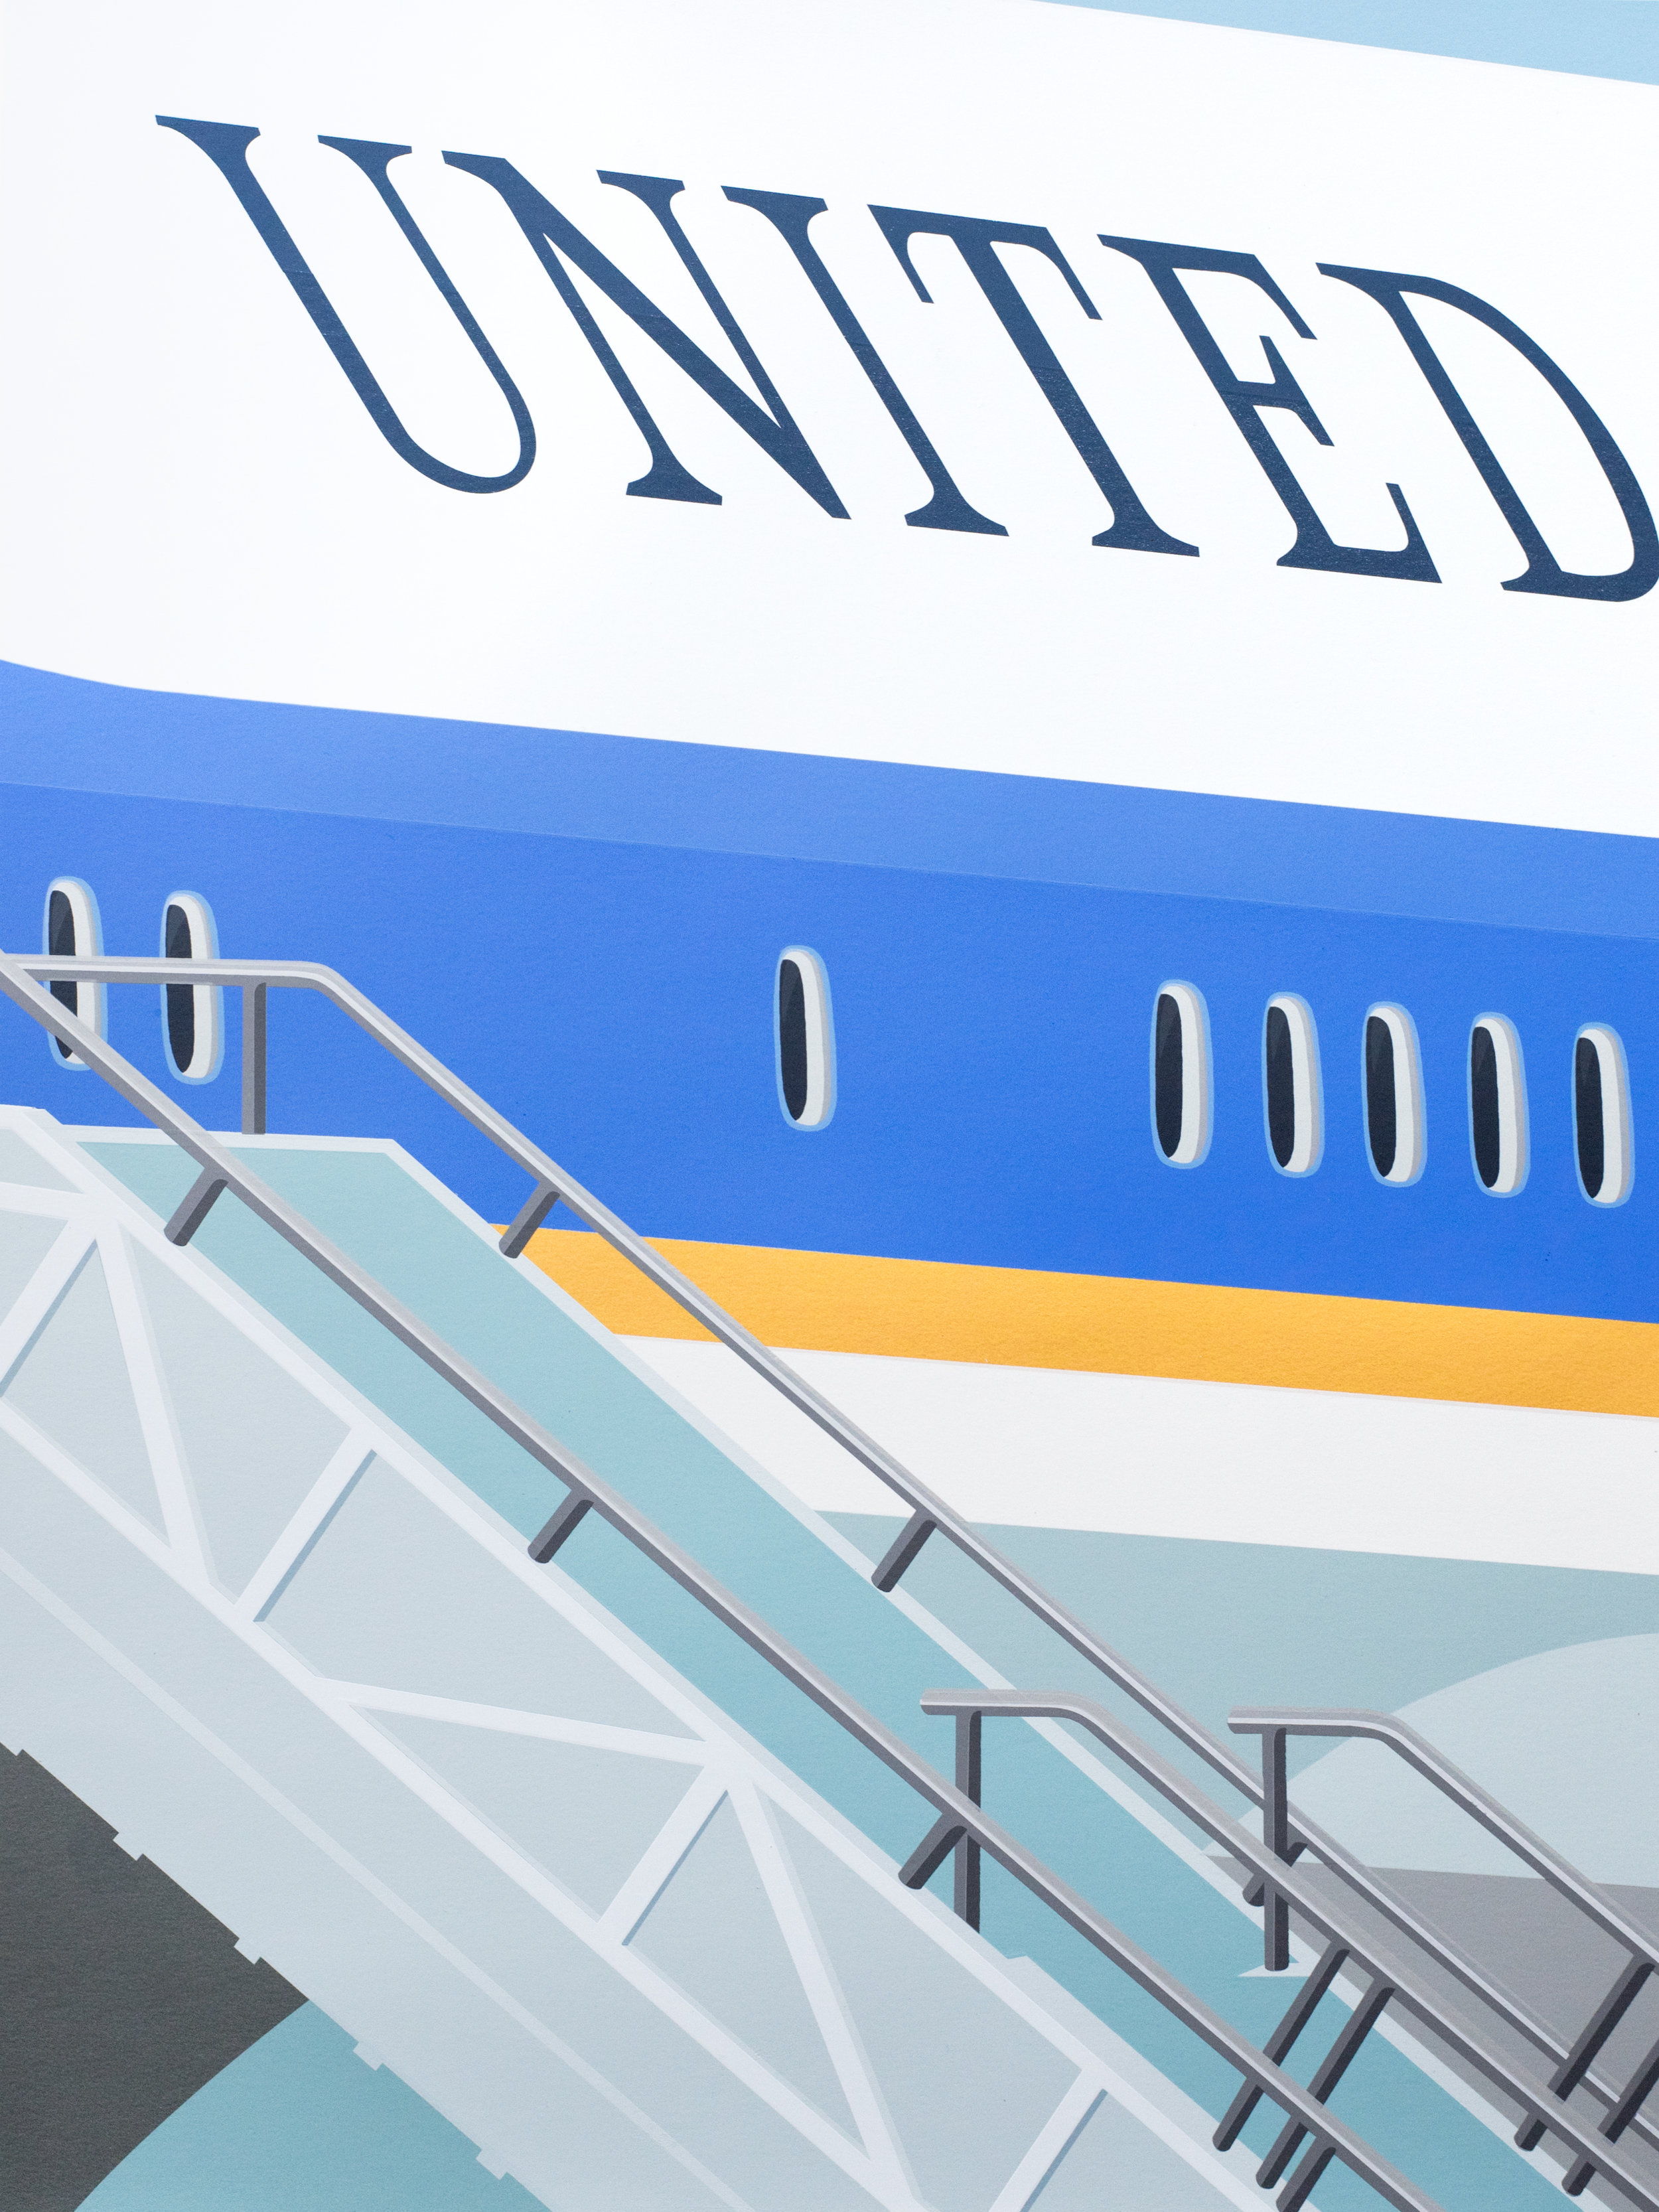 Air Force One, 2018, screenprint, 26.5 x 19.75 inches image and sheet, edition of 10,